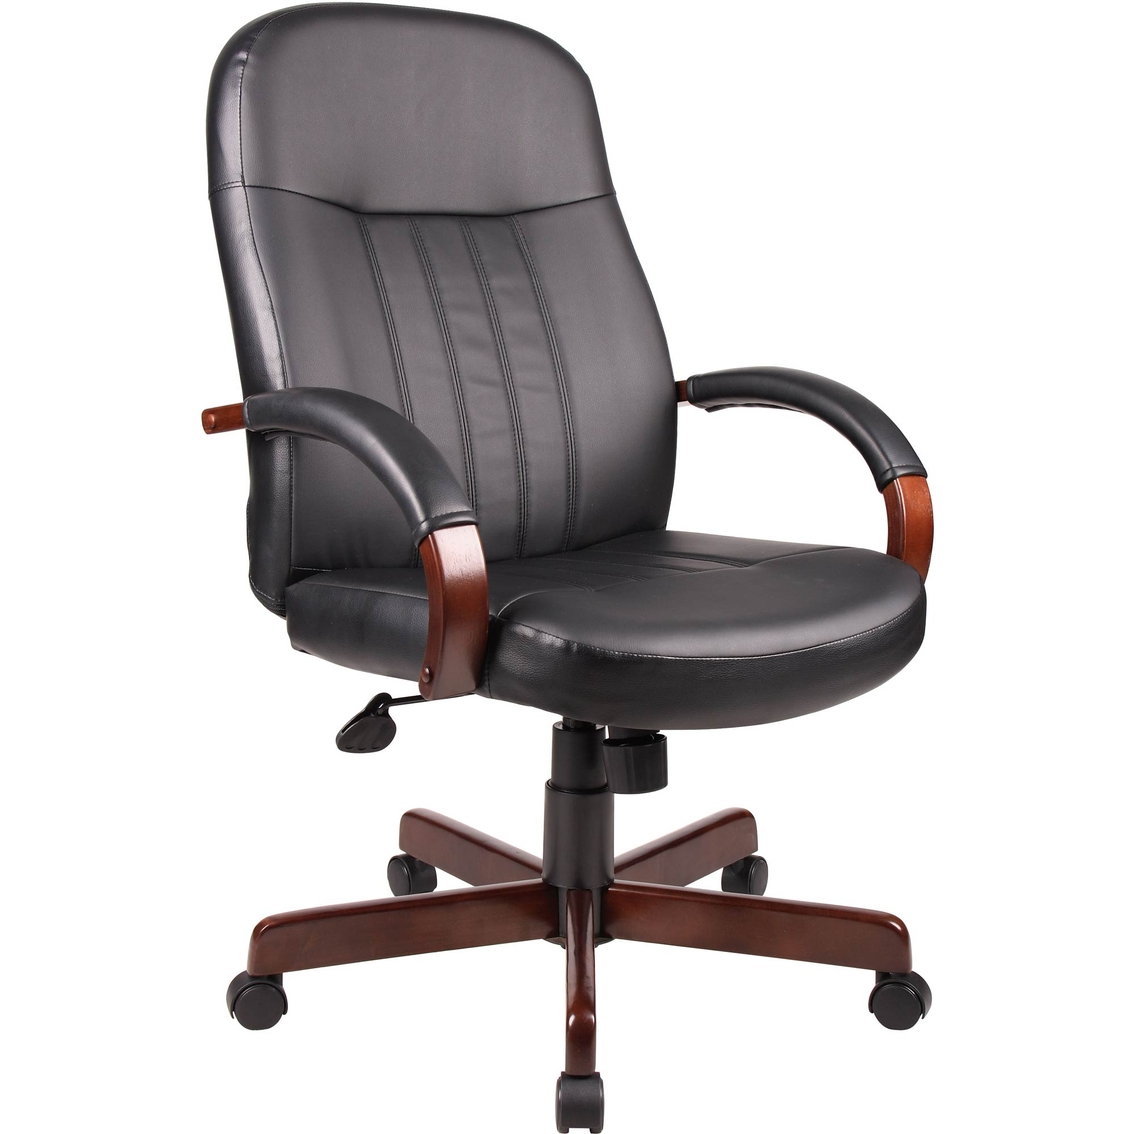 presidential seating wood and leather executive office chair office chairs more shop the. Black Bedroom Furniture Sets. Home Design Ideas